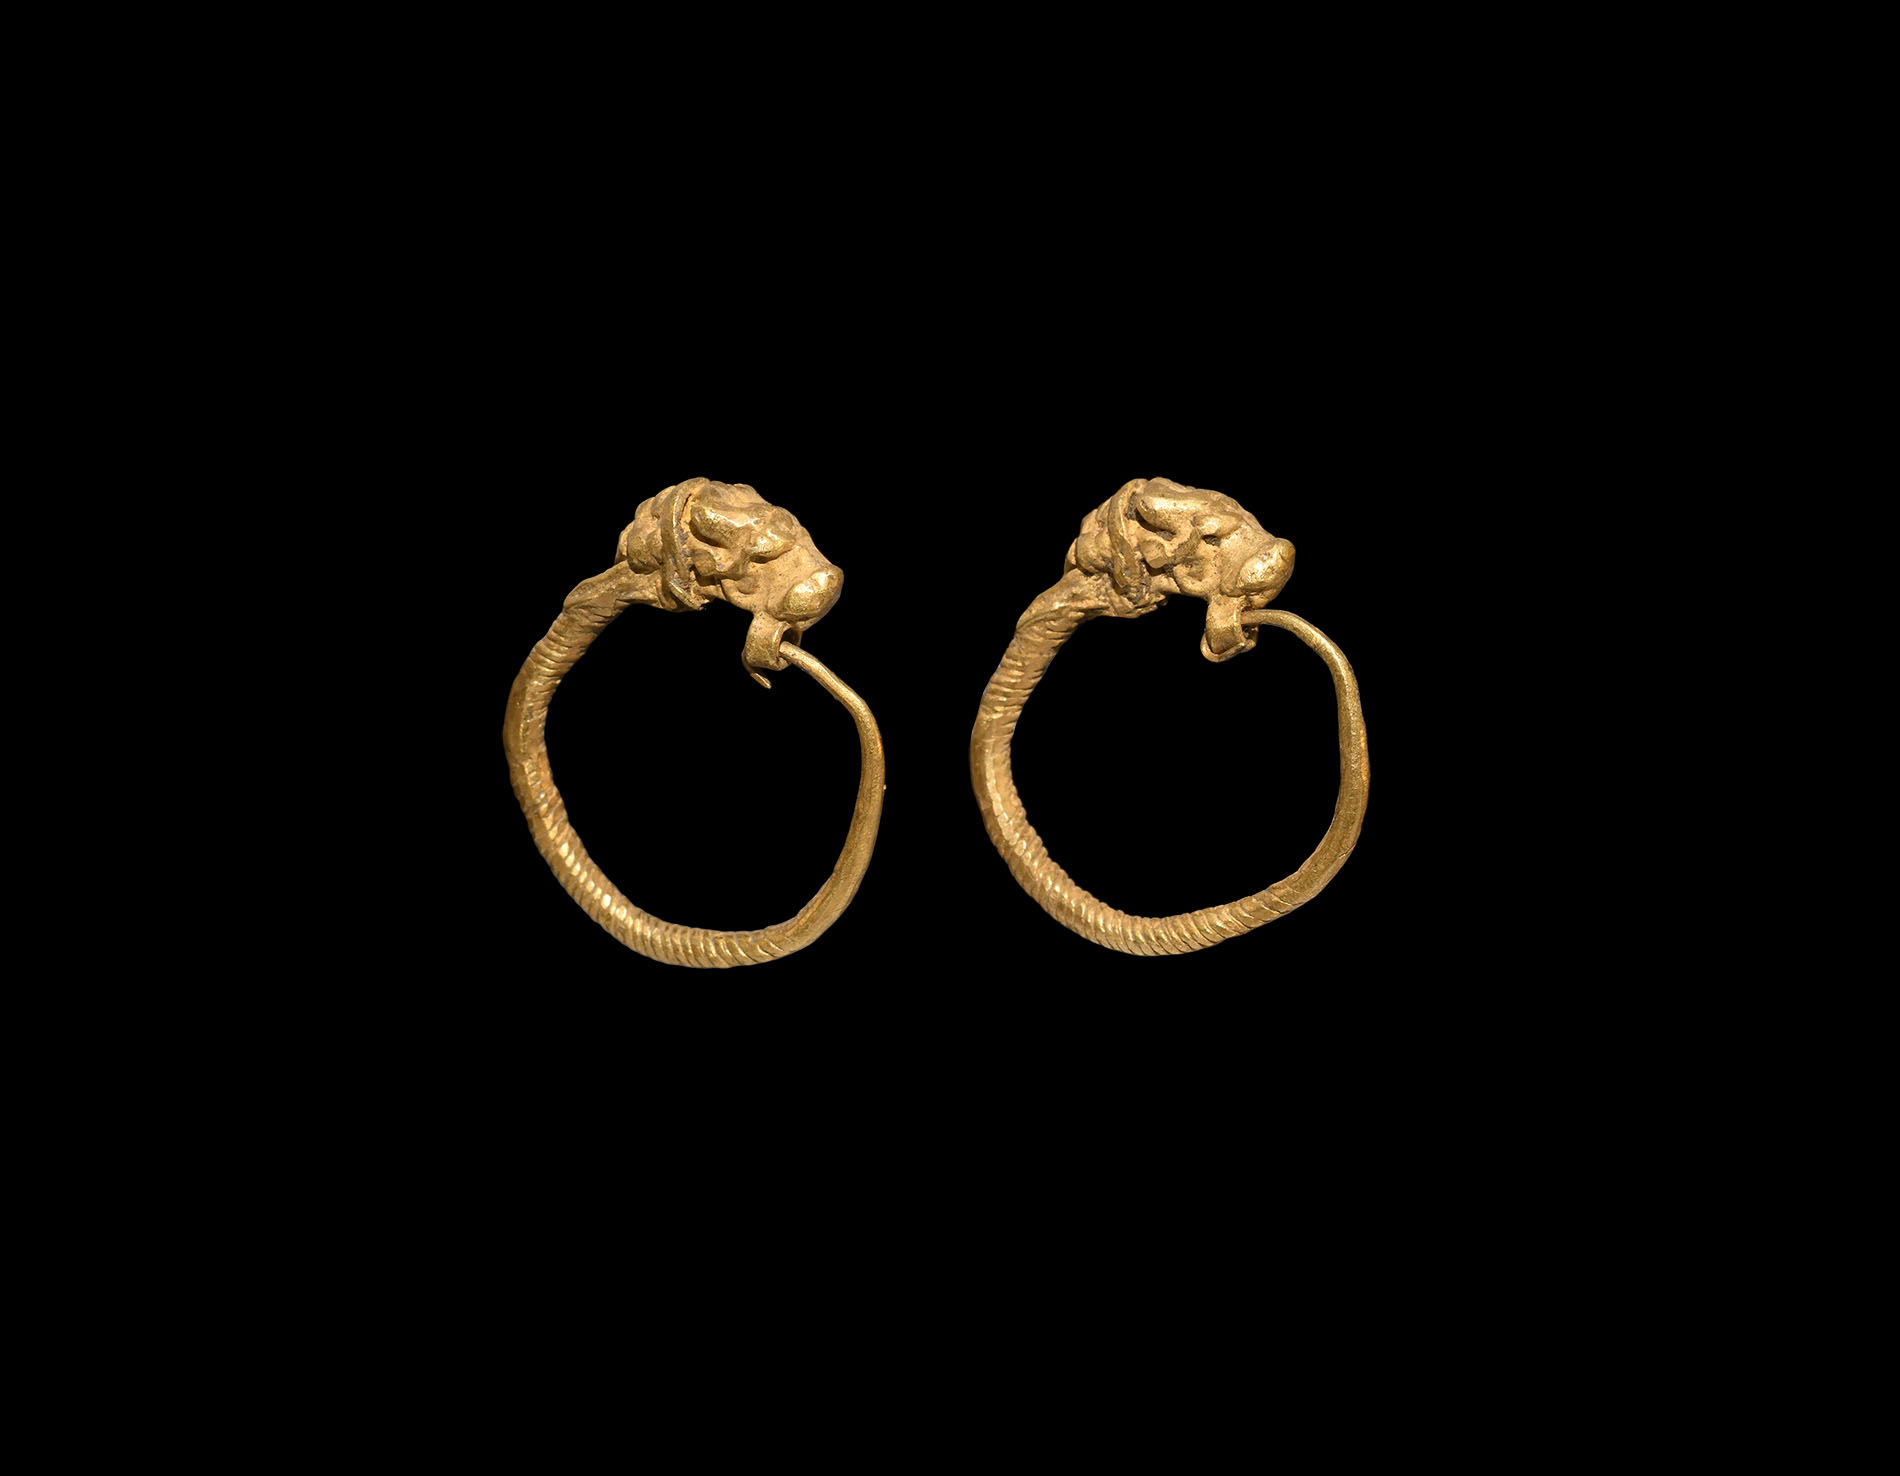 Greek Gold Lion-Headed Earrings